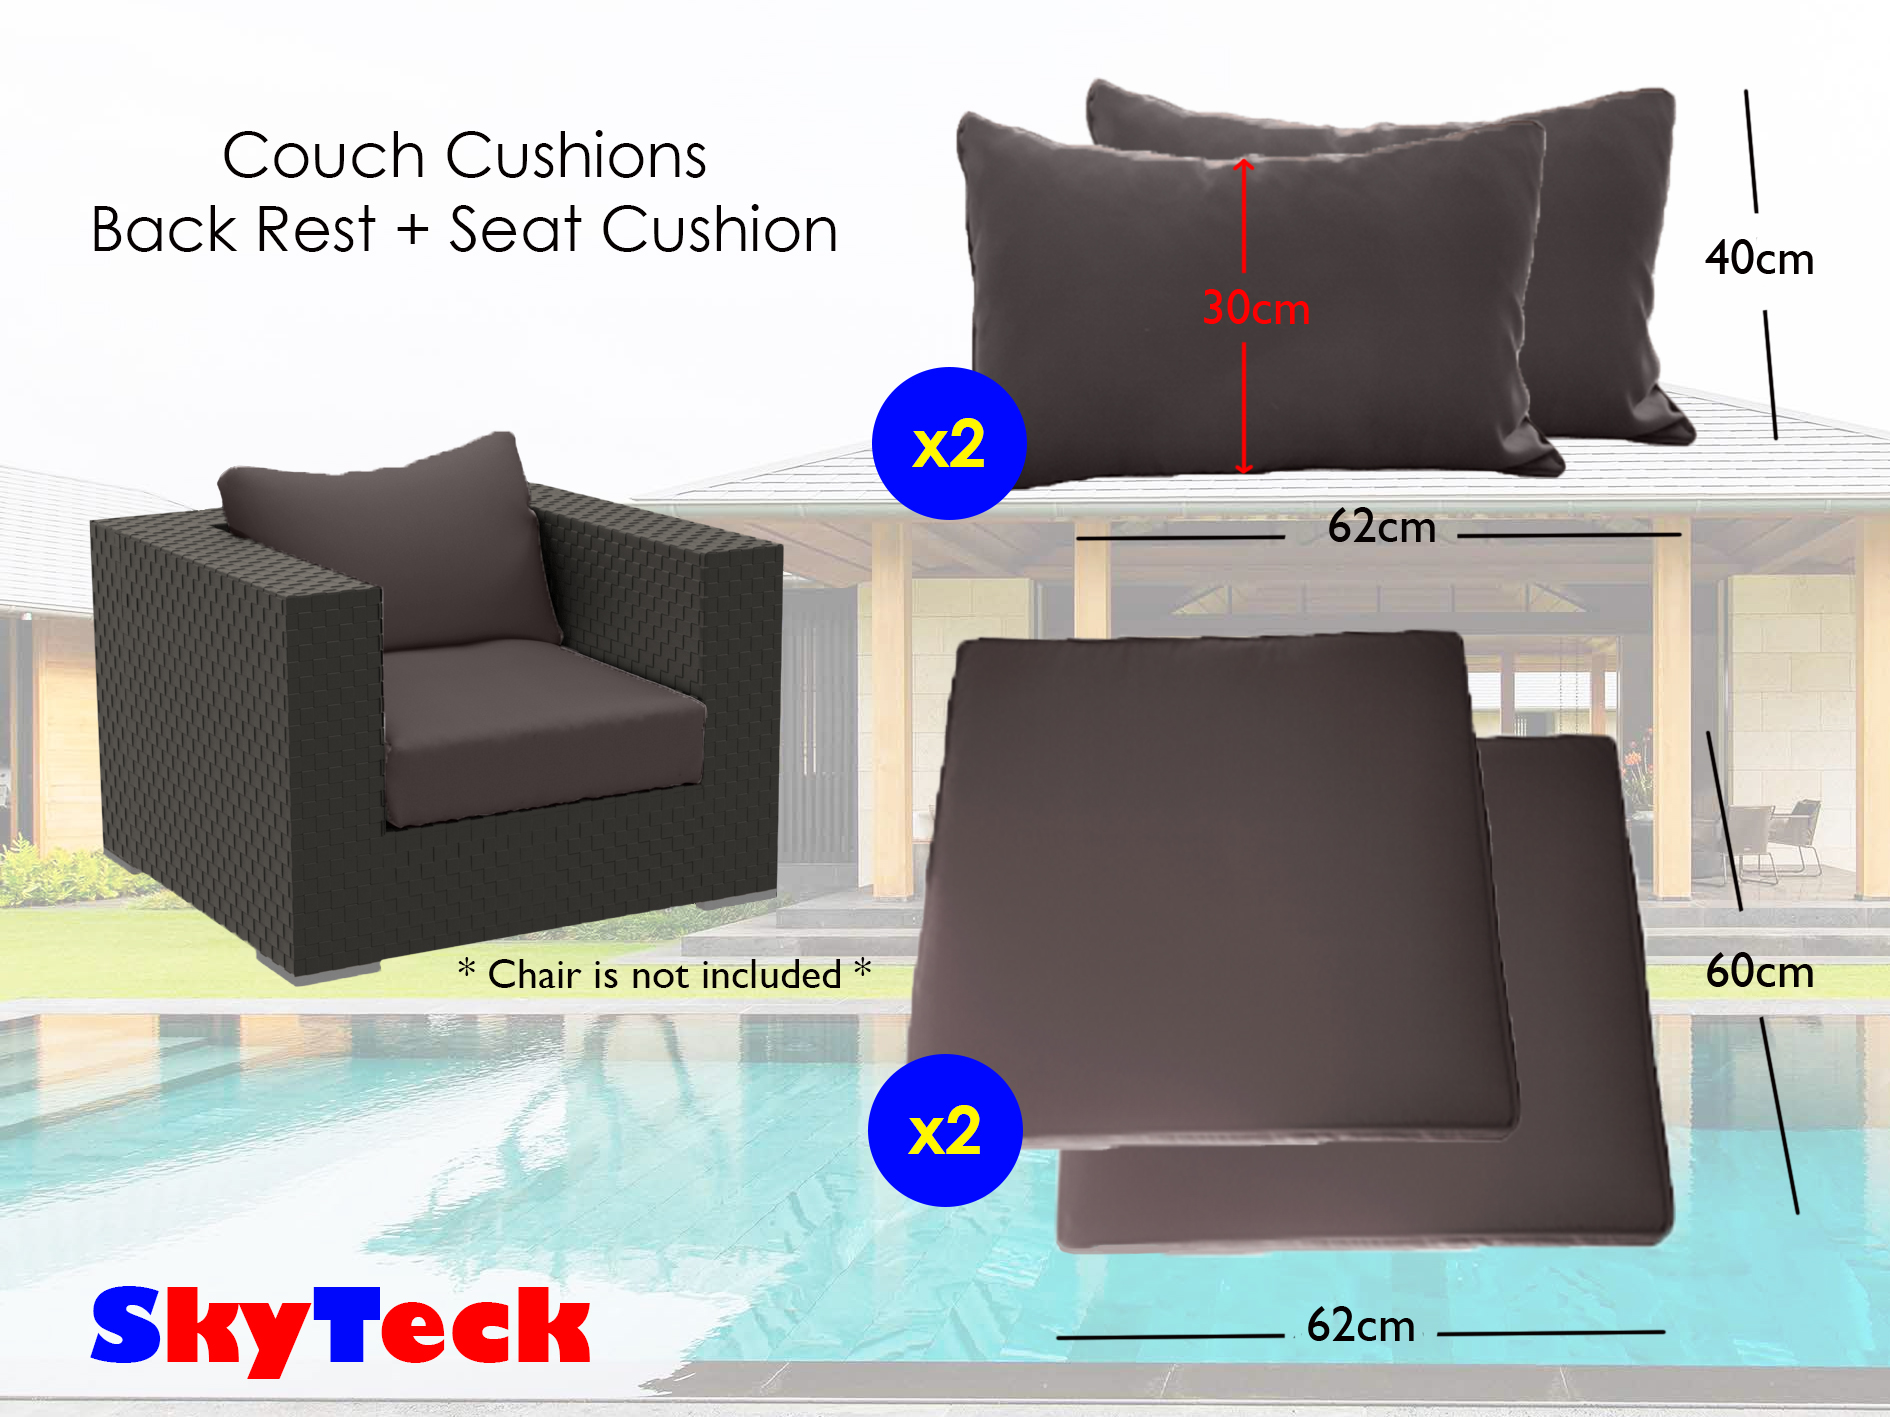 Twin Pack Grey Water-Proof Replacement Cushion Seat + Back Rest Cushion For Indoor/Outdoor Furniture